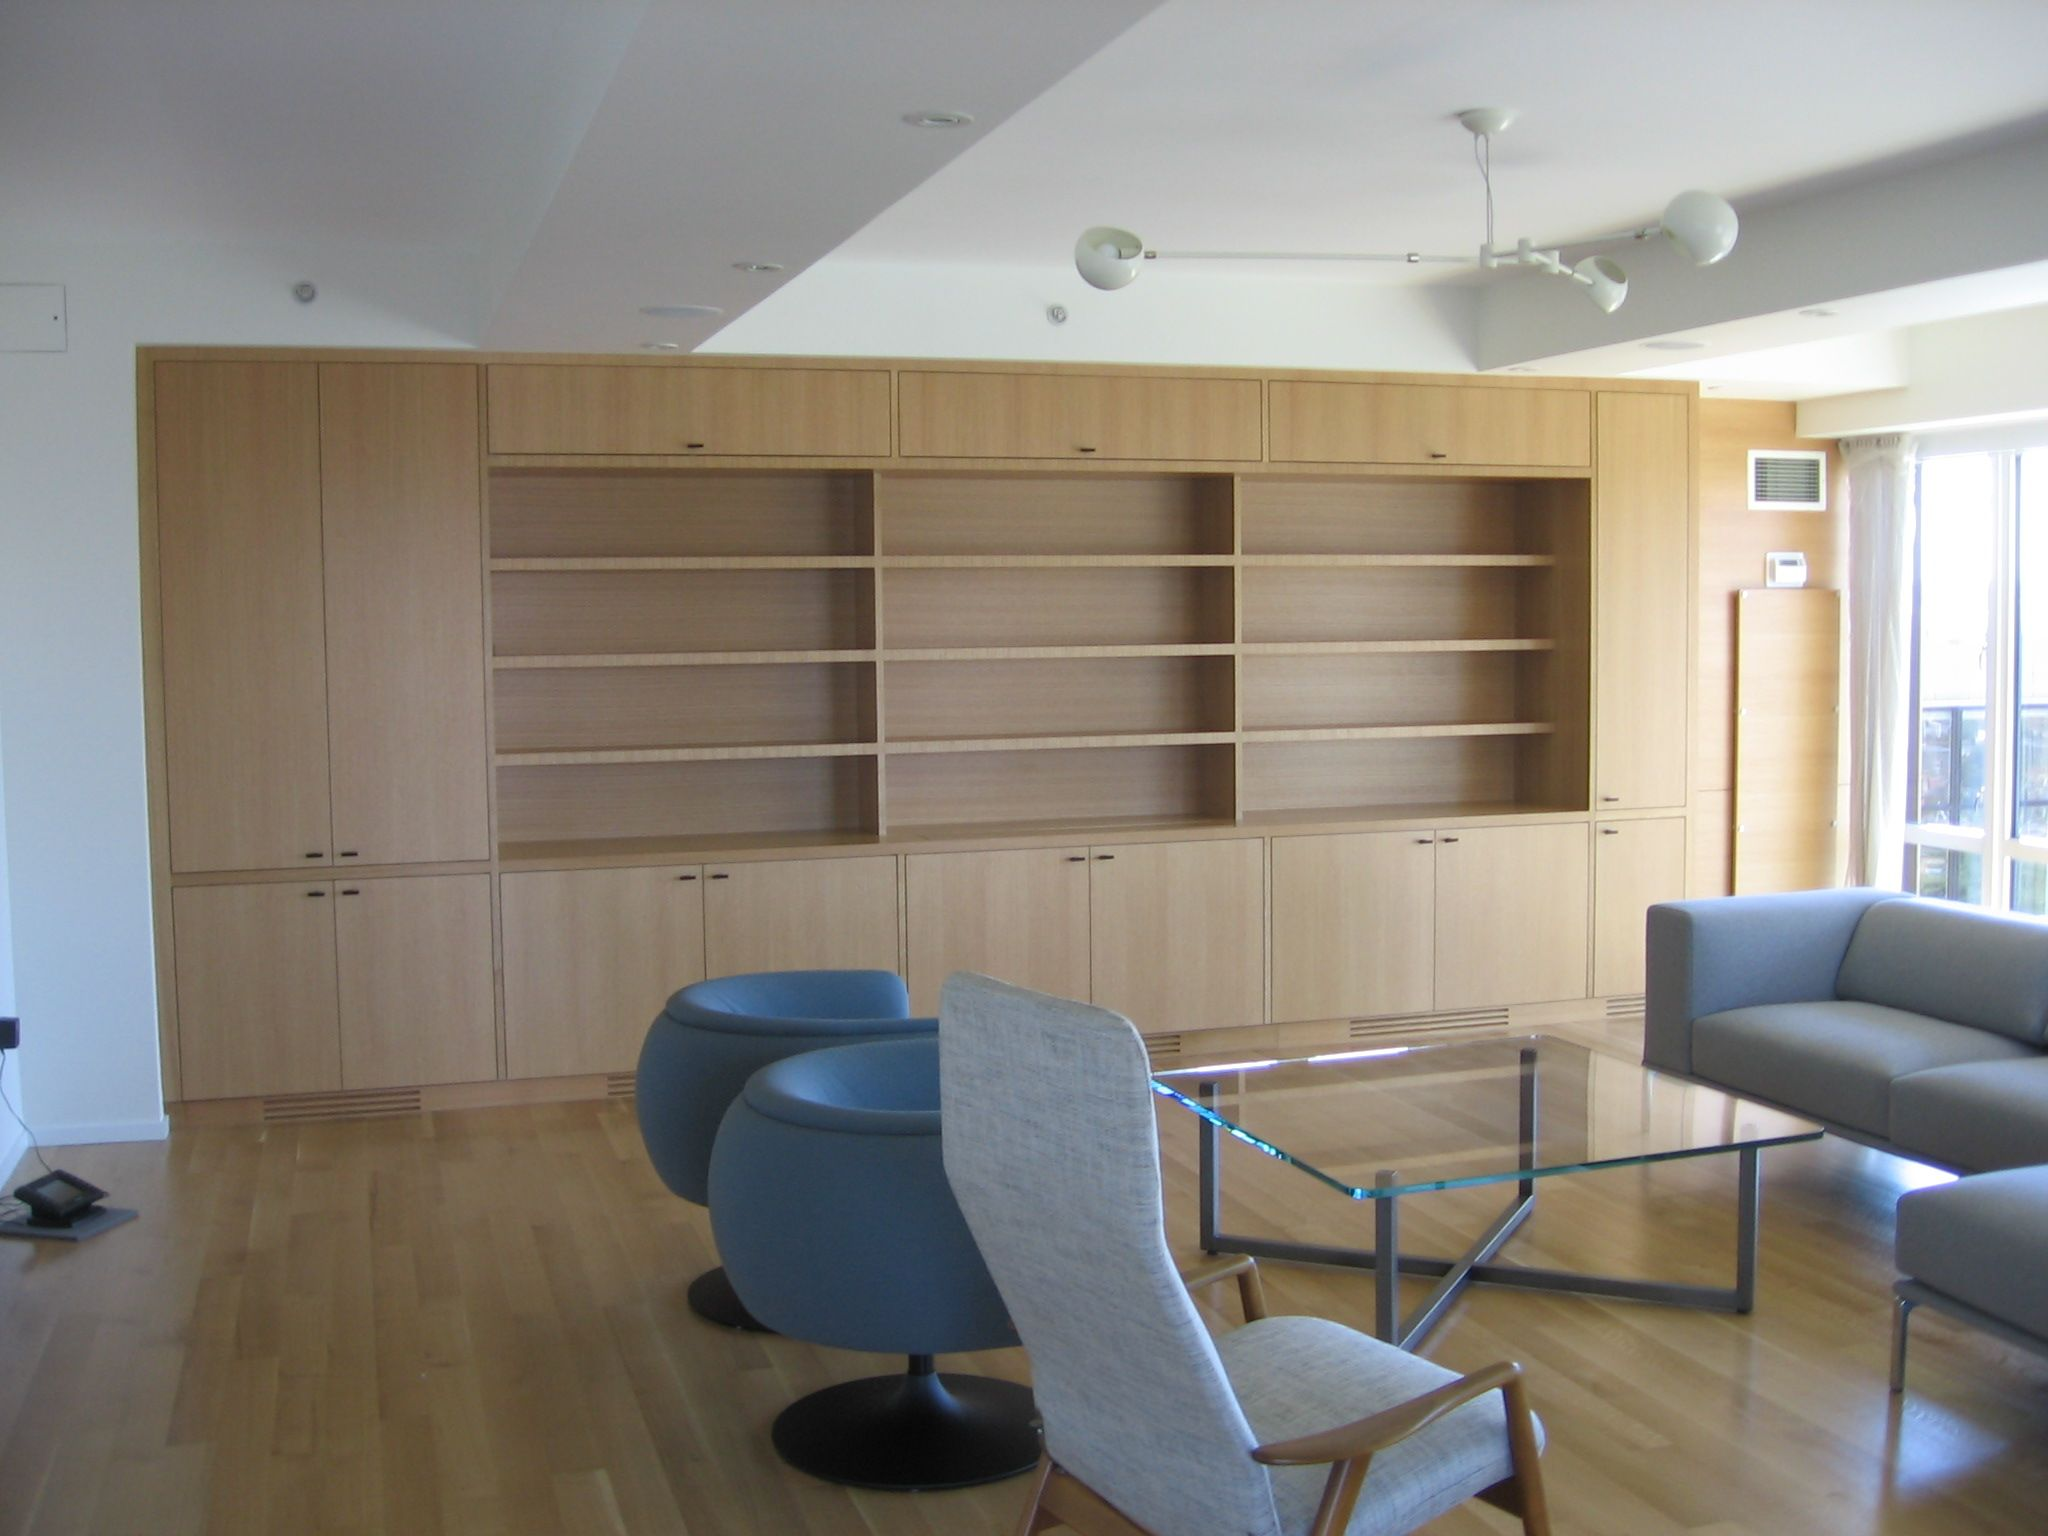 Custom Built In Wall Unit With Bookcases Fabricated In Quartered White Oak.